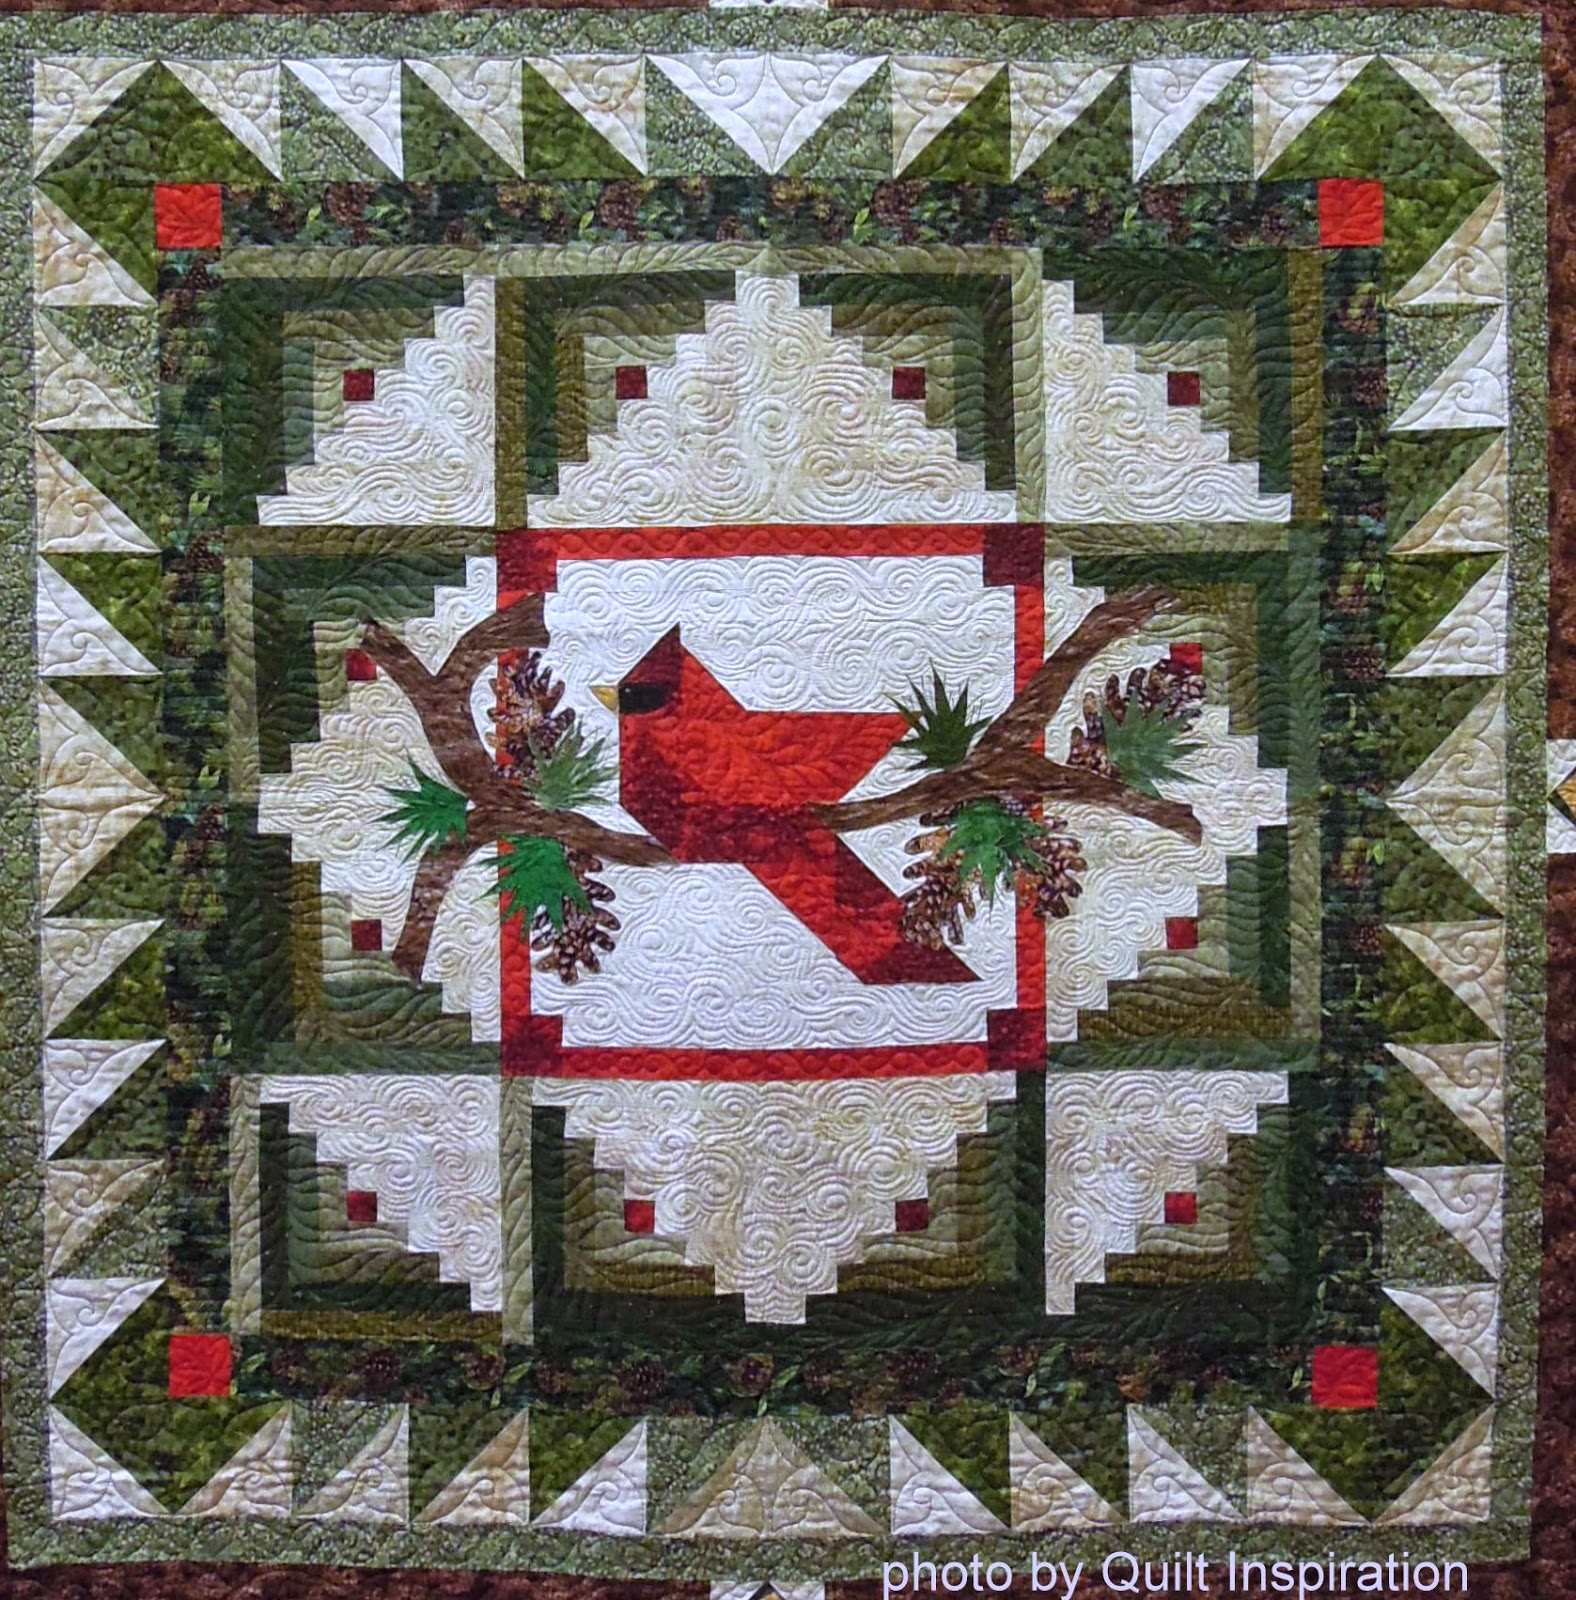 Log Cabin Patterns : Quilt inspiration happy quilted holidays the best of